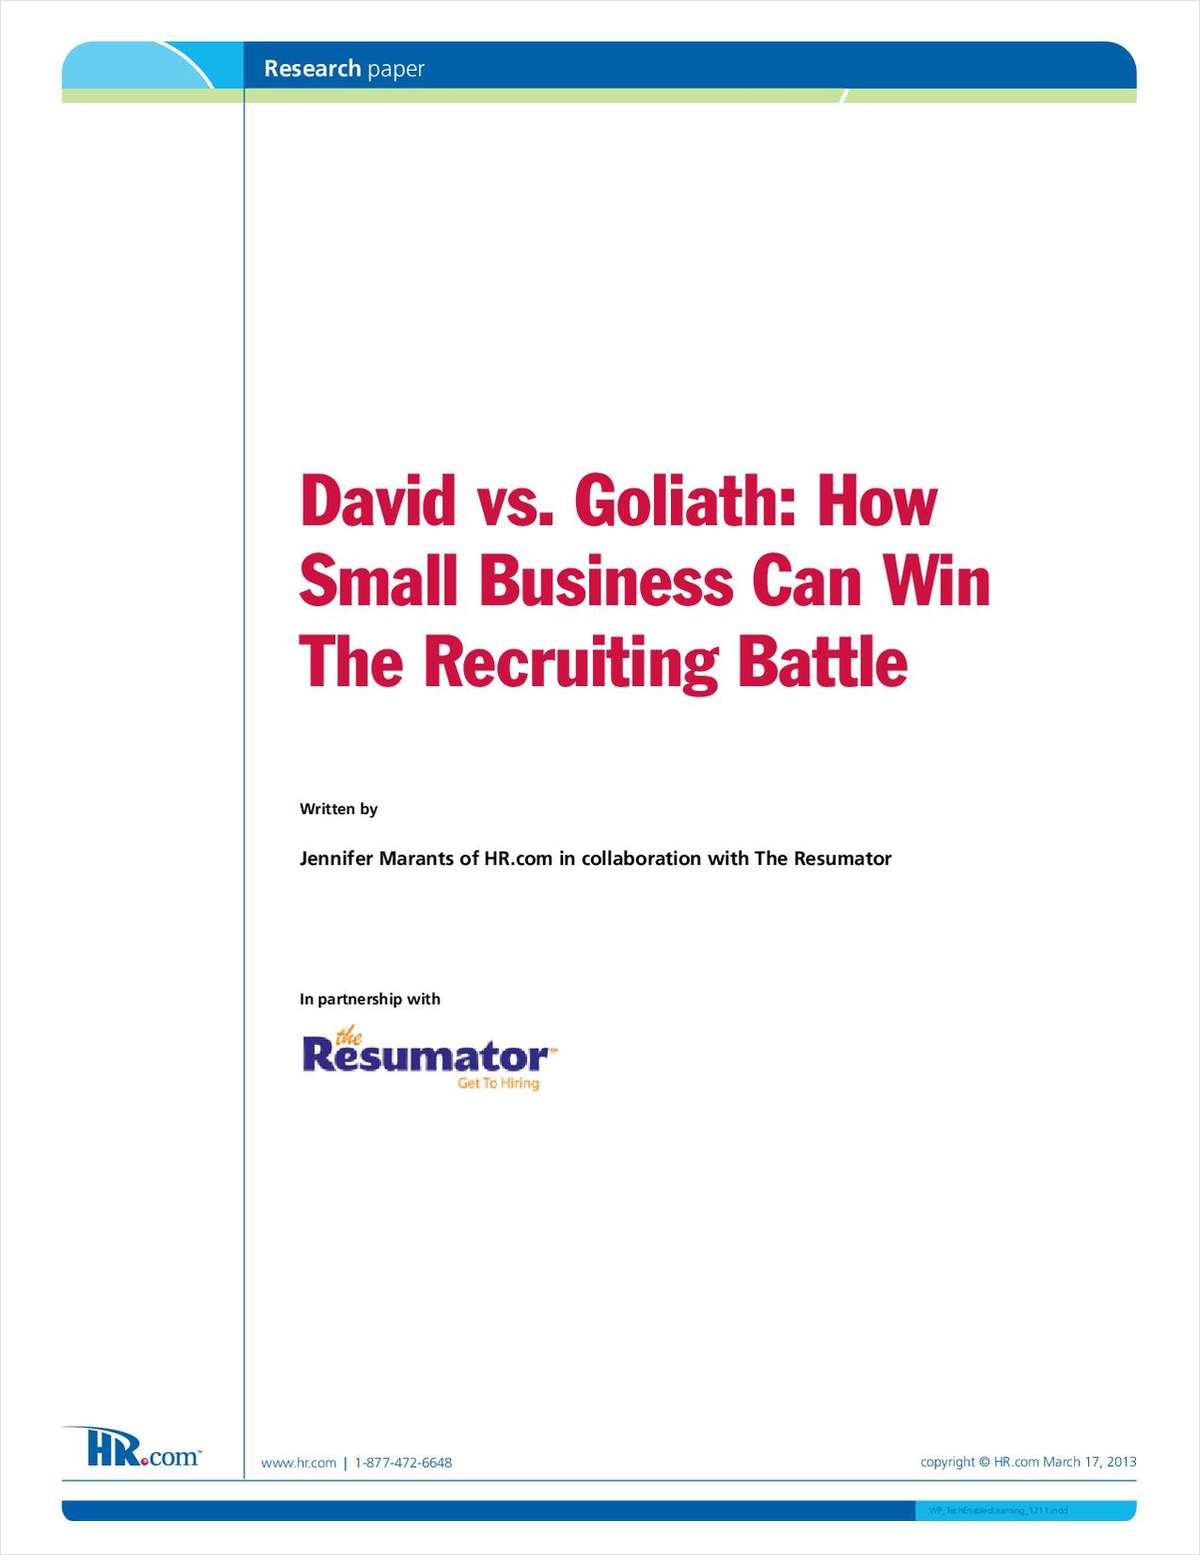 David vs. Goliath: How Small Business Can Win The Recruiting Battle